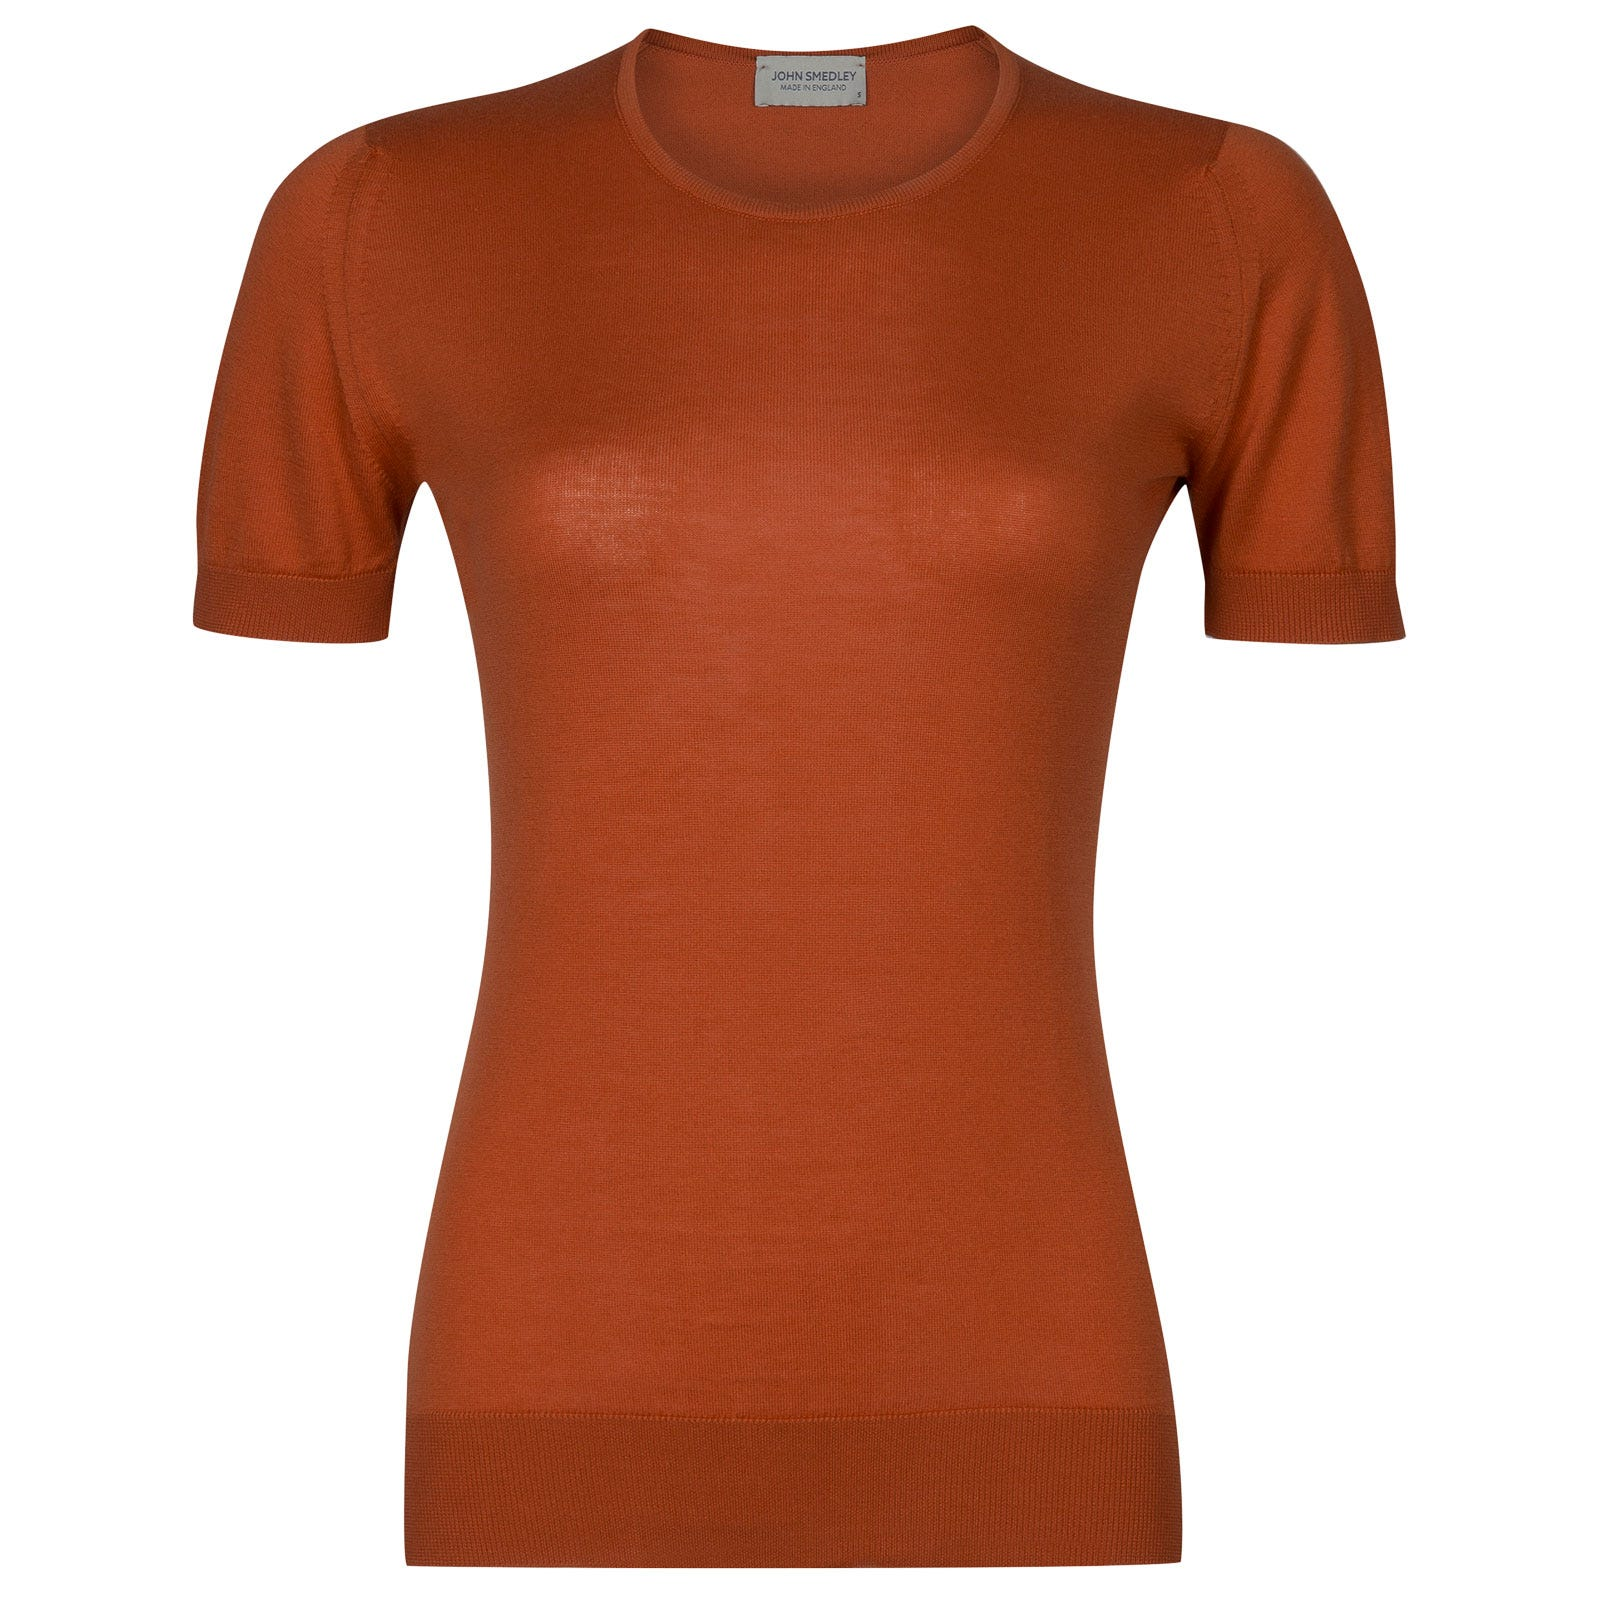 John Smedley daniella Sea Island Cotton Sweater in Flare Orange-L